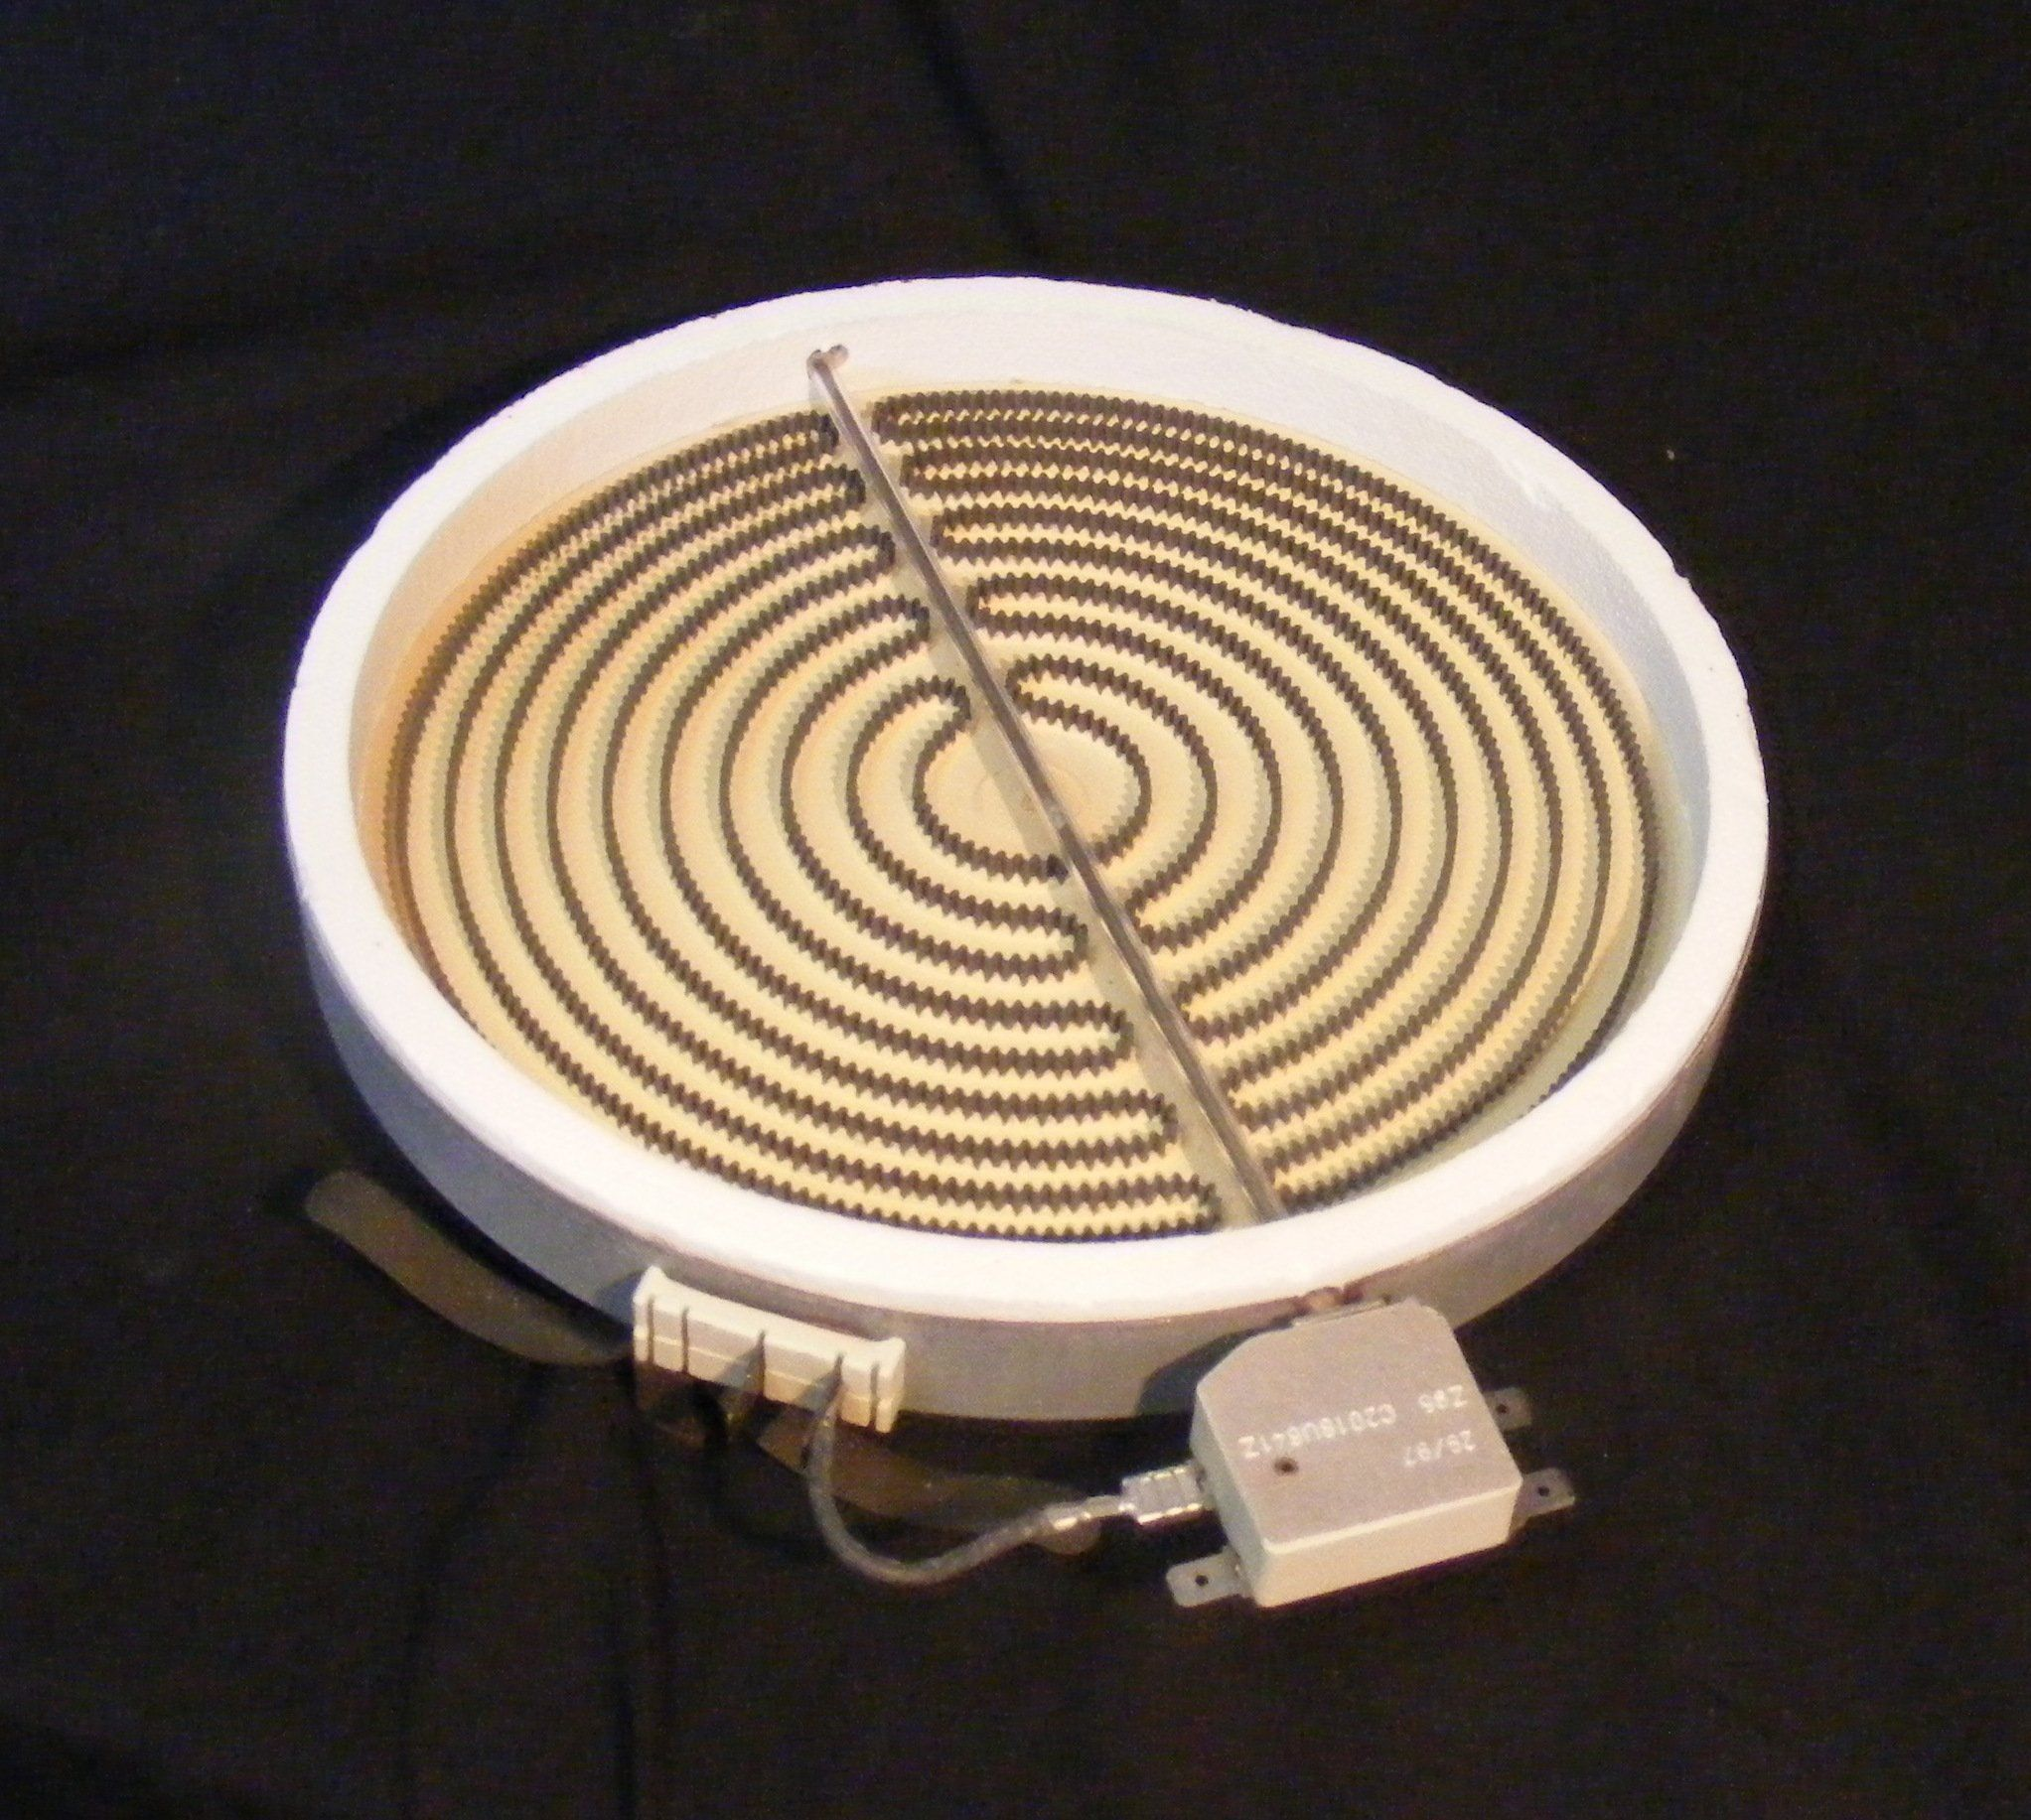 71001424 Jenn Air Range 2200 Watt Surface Element Burner